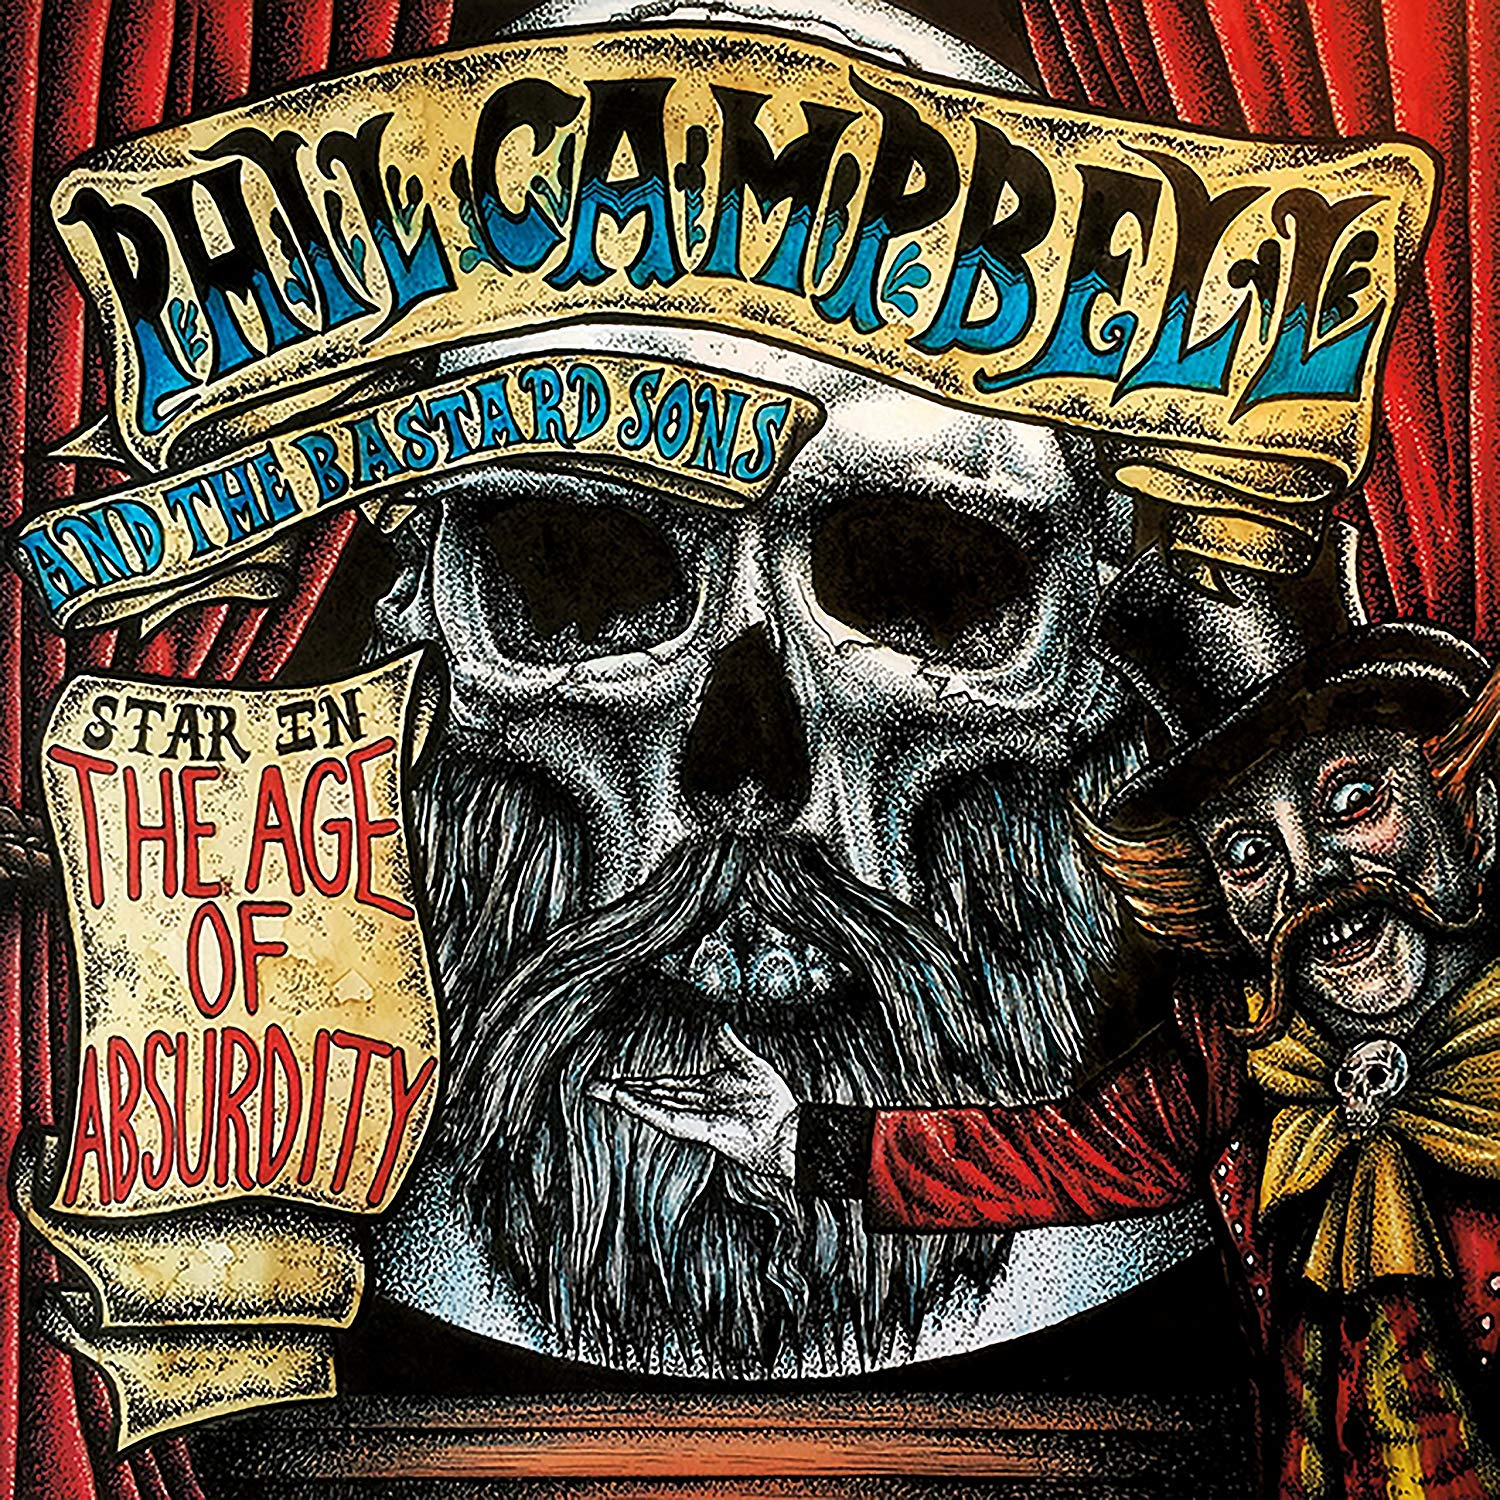 CAMPBELL PHIL AND THE BASTARD SONS - THE AGE OF ABSURDITY (CD)